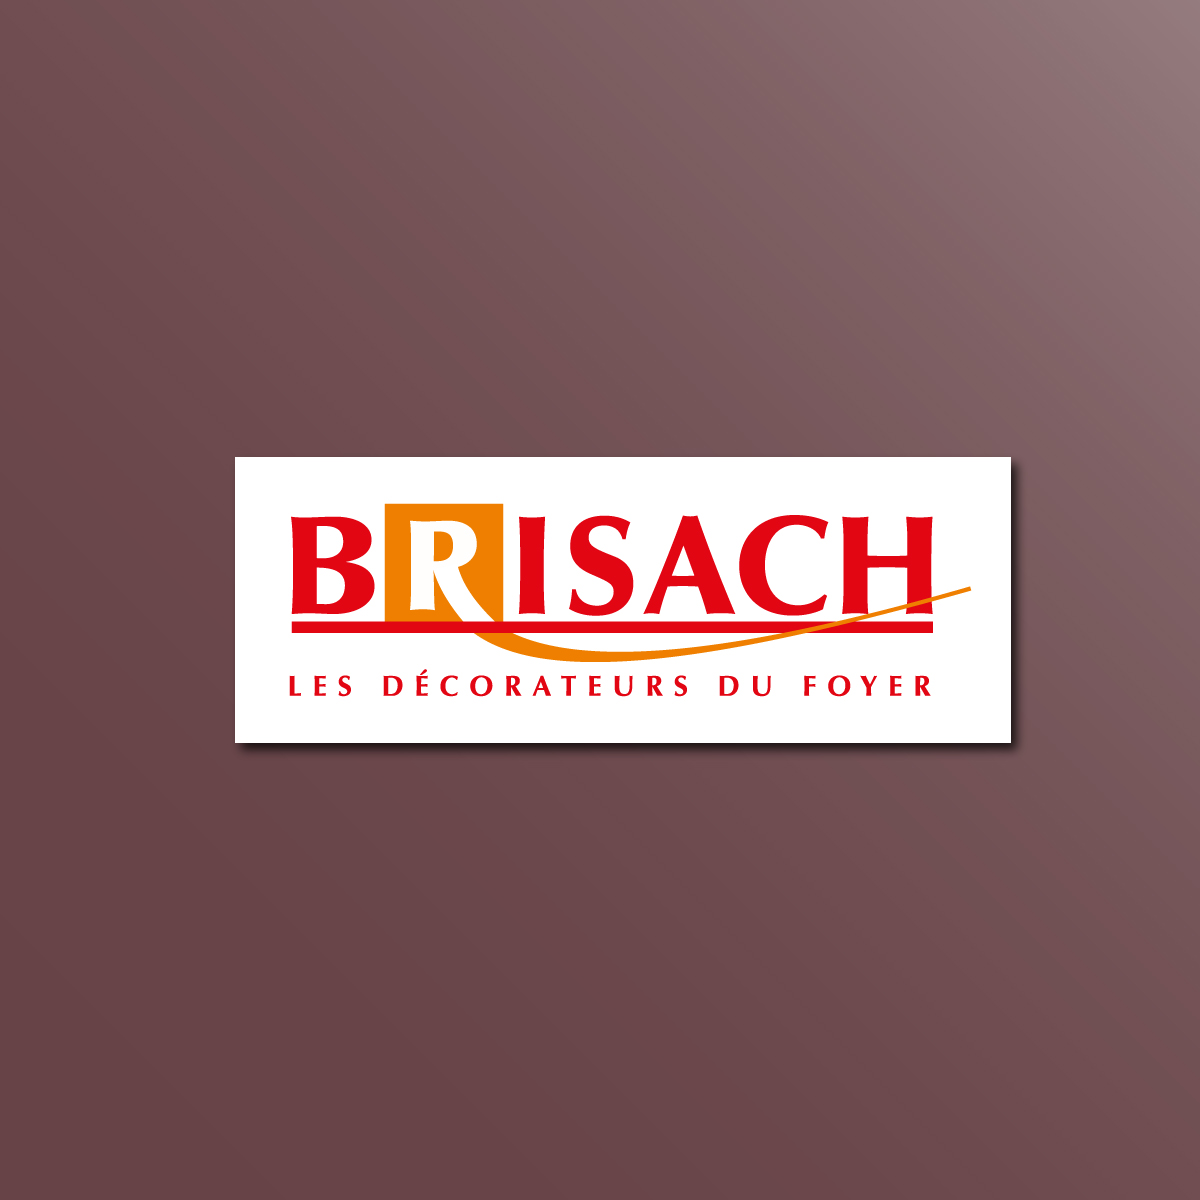 Cheminee Brisach Design Brisach Agence Communication Creactive Communication